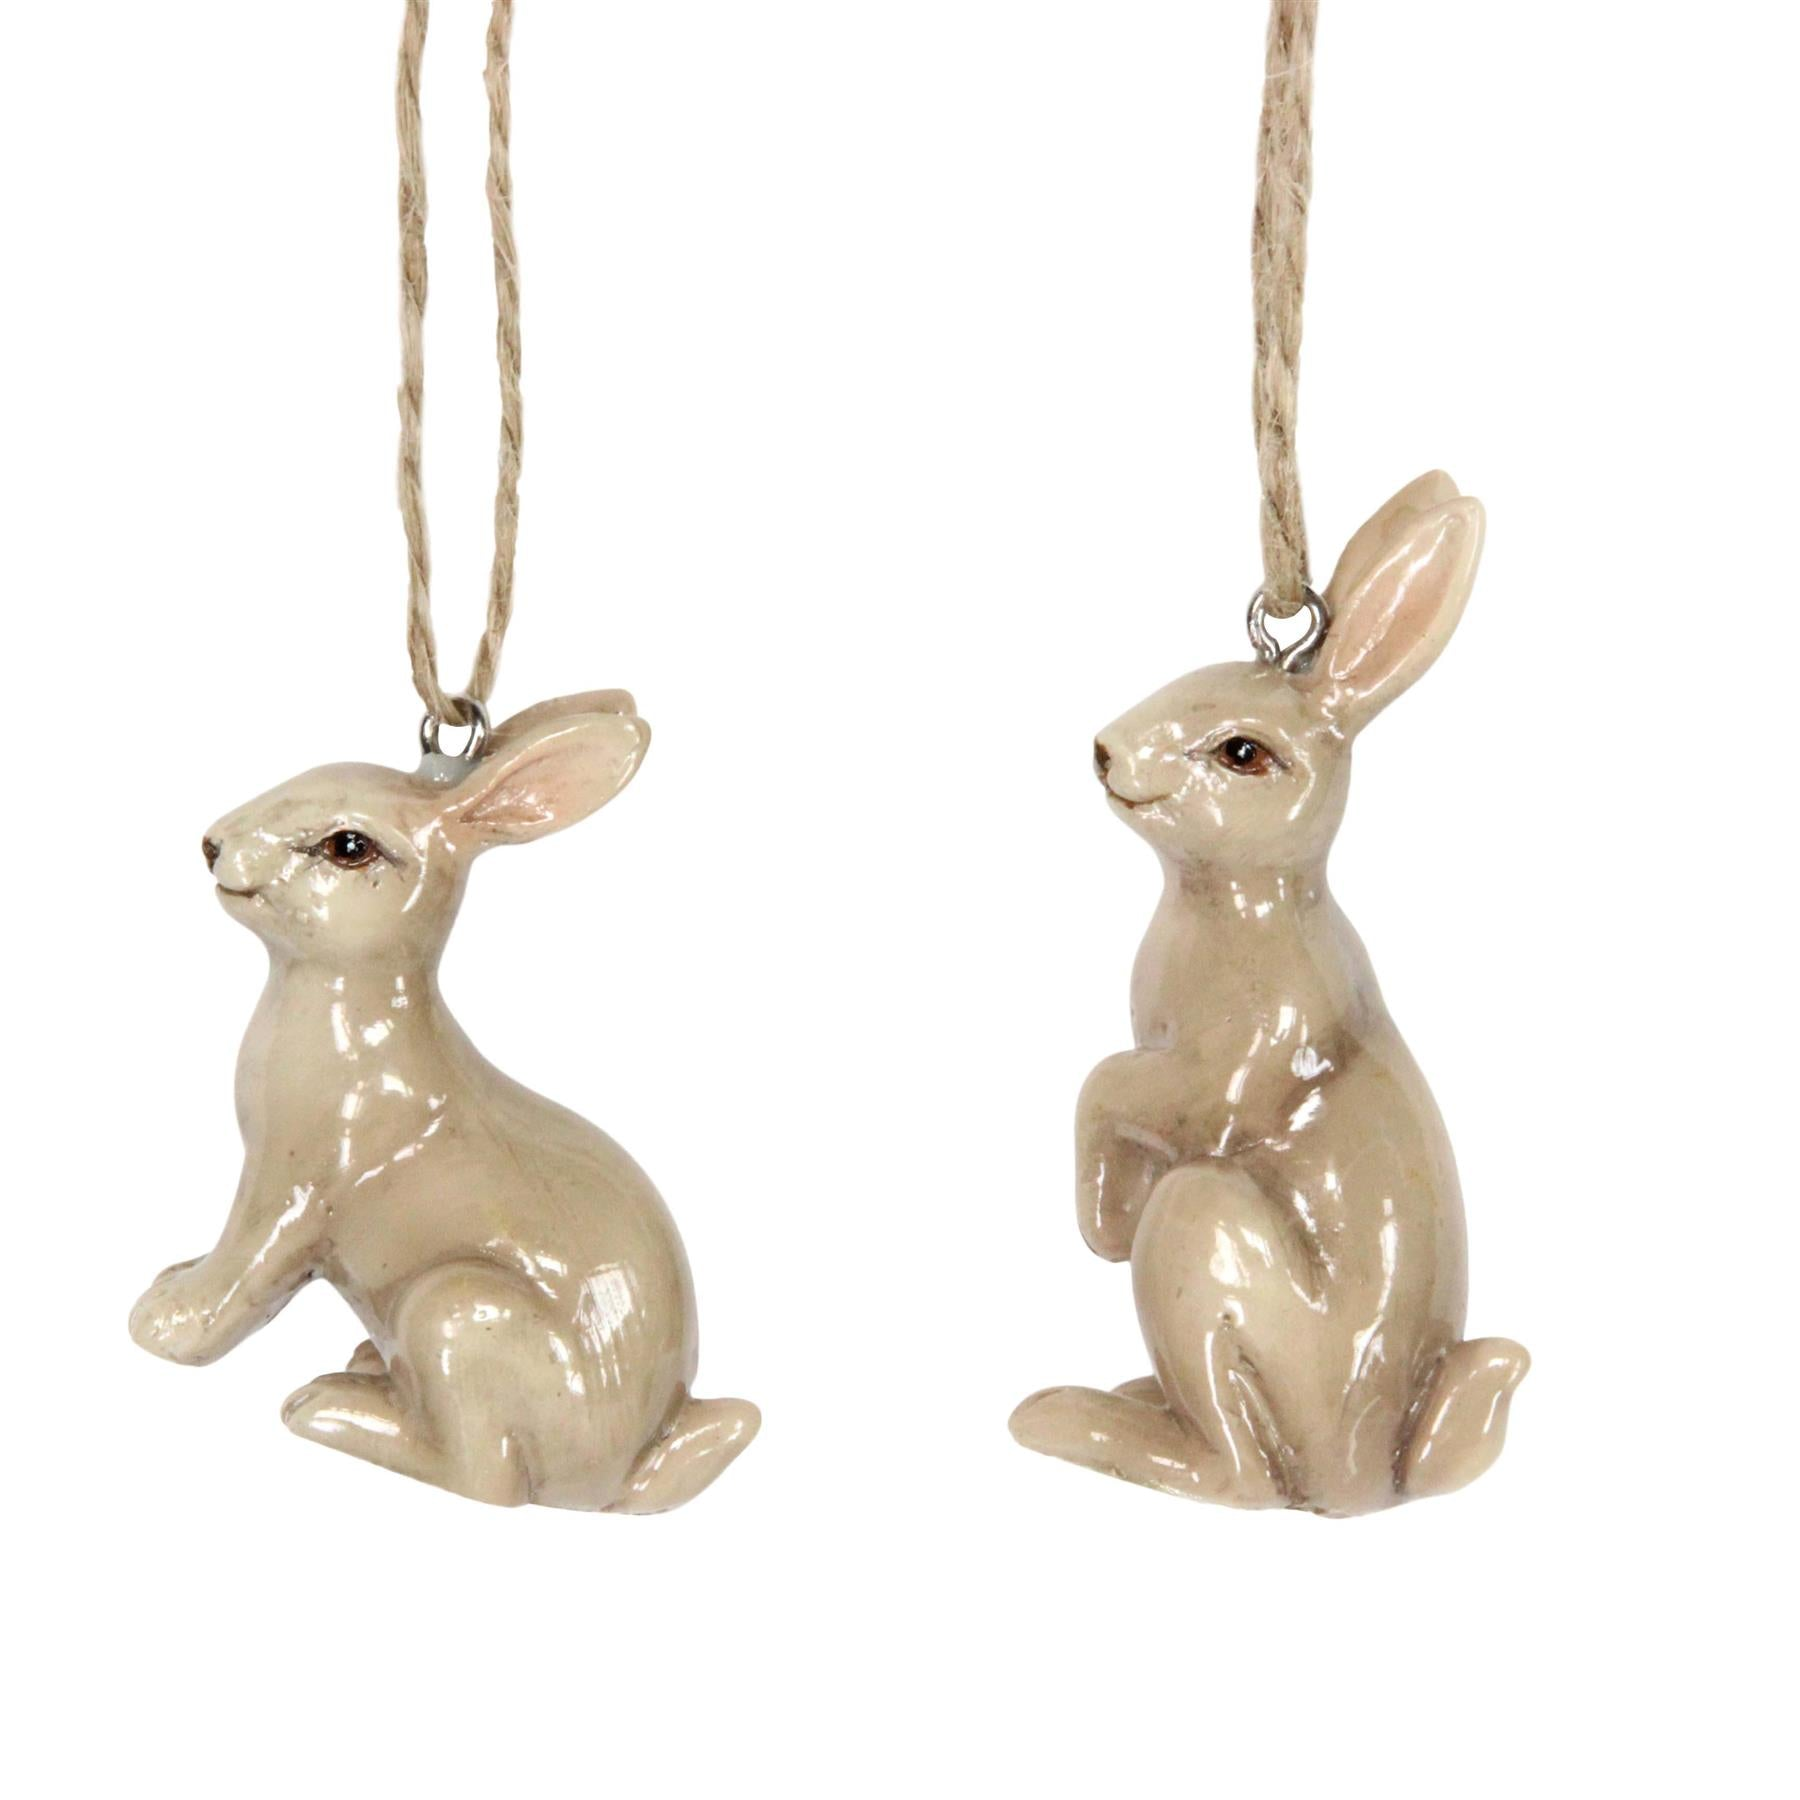 Brown Ceramic Bunny Ornament